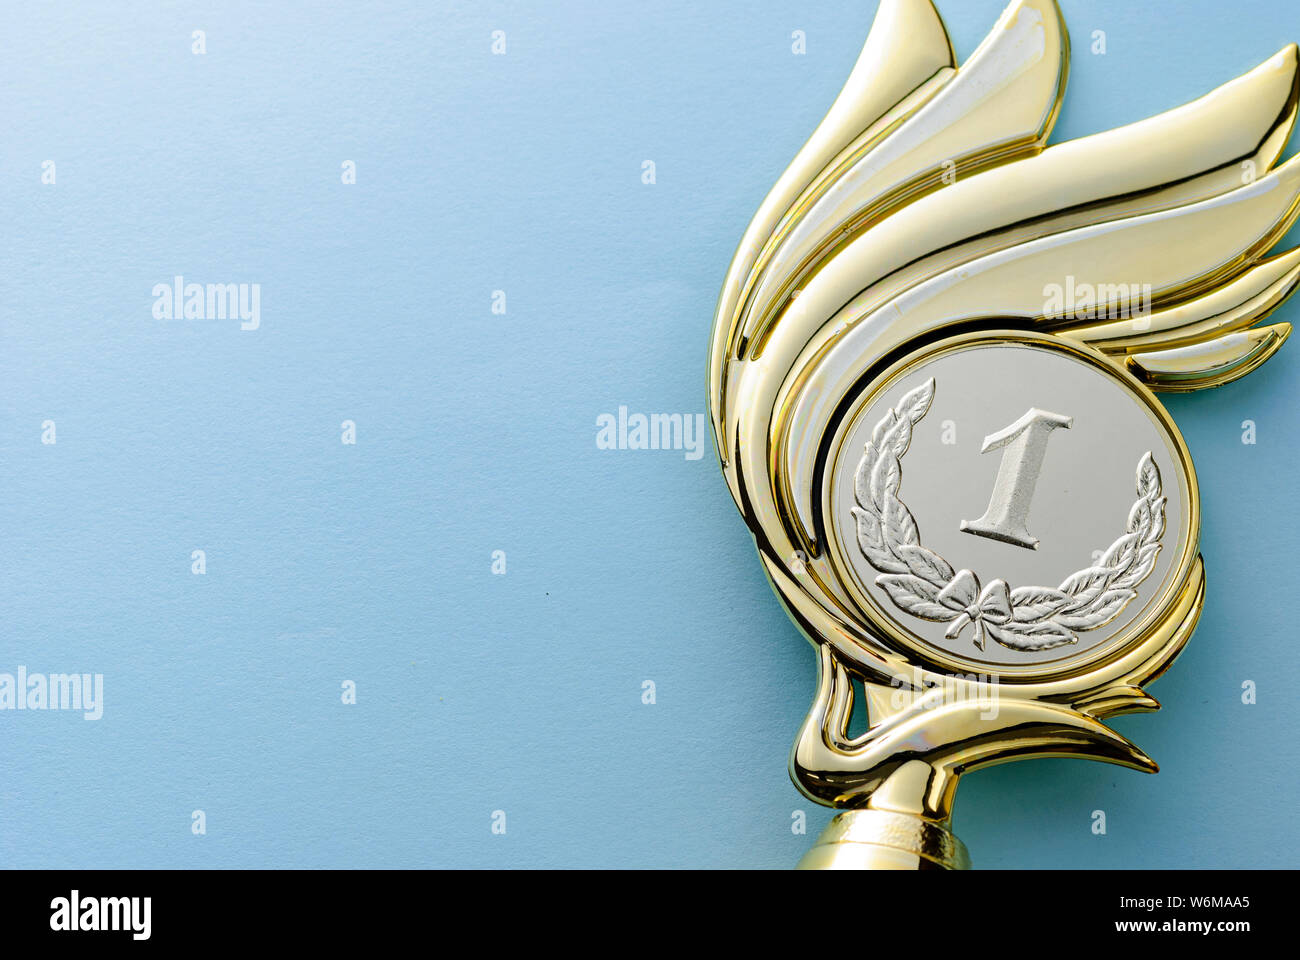 Gold Medallion Winners Trophy With Laurel Wreath For The Winner Of A Competition Of Championship Event Over Grey With Copy Space Stock Photo Alamy